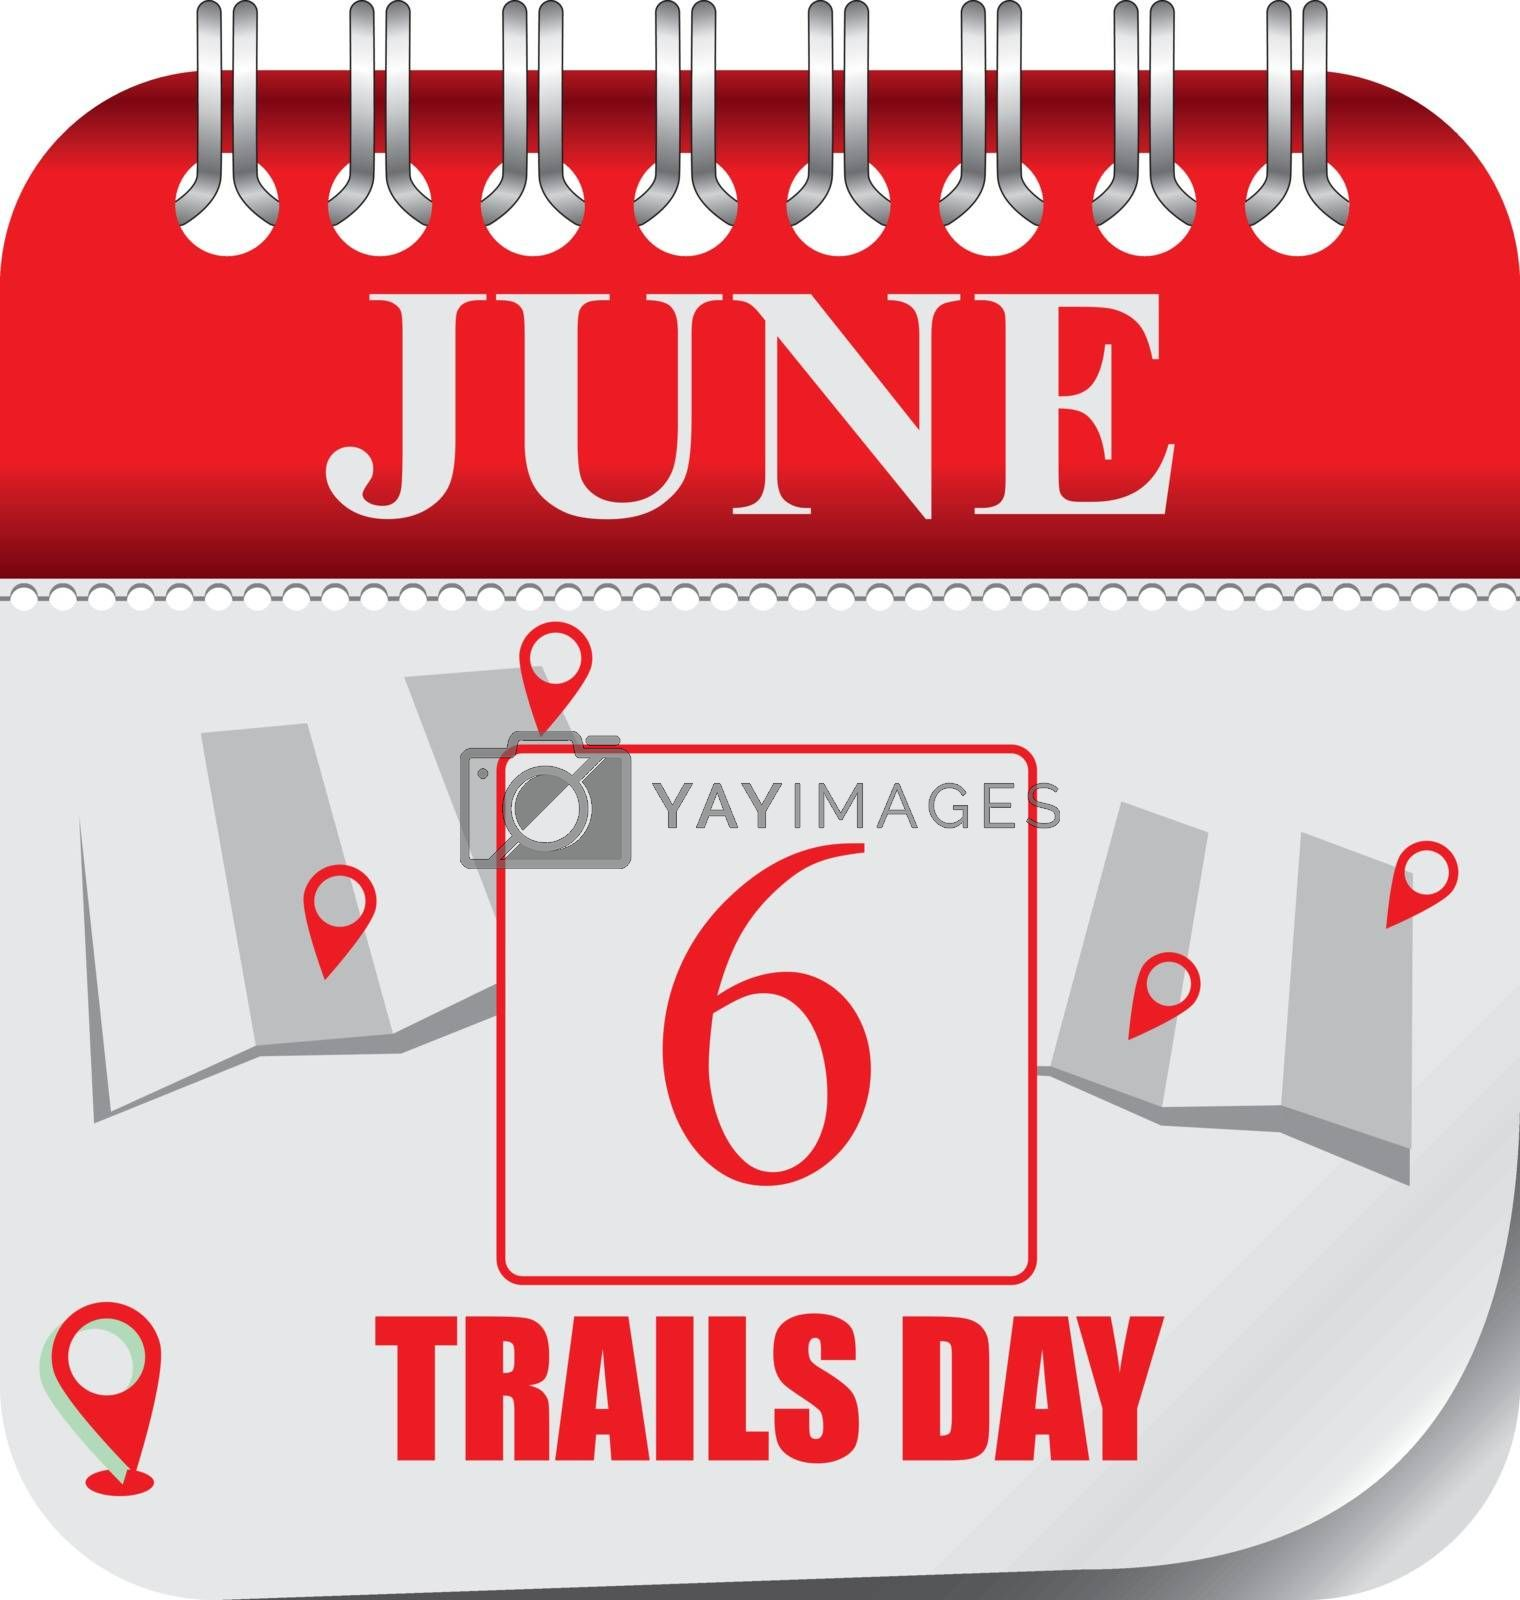 Calendar with perforation for changing dates - june Trails Day